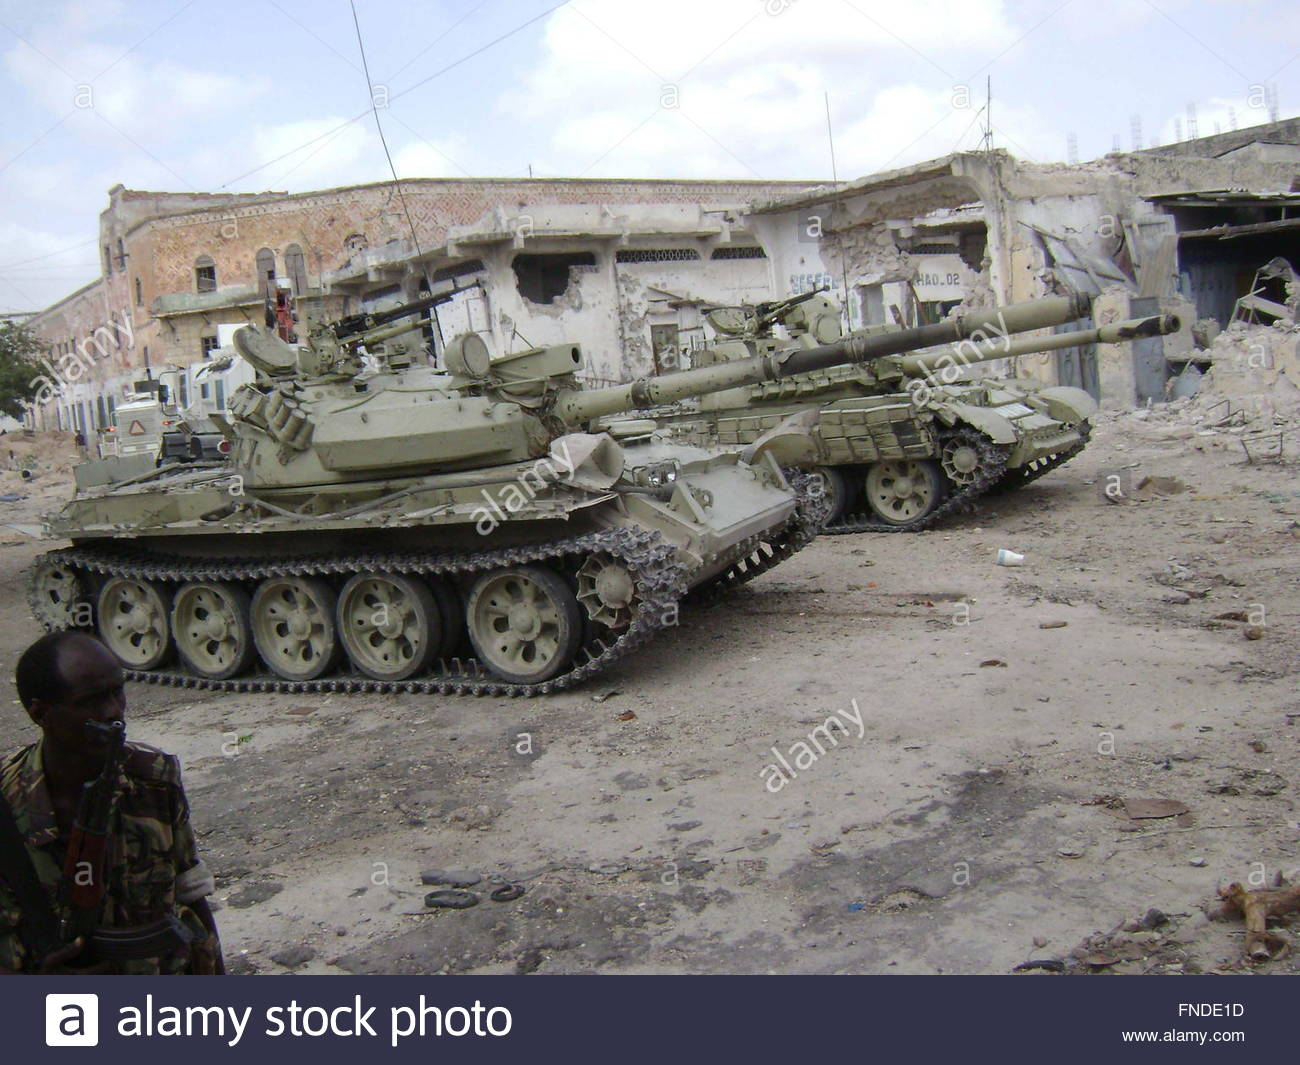 Kladivo - tanks-of-african-union-forces-in-mo.jpg